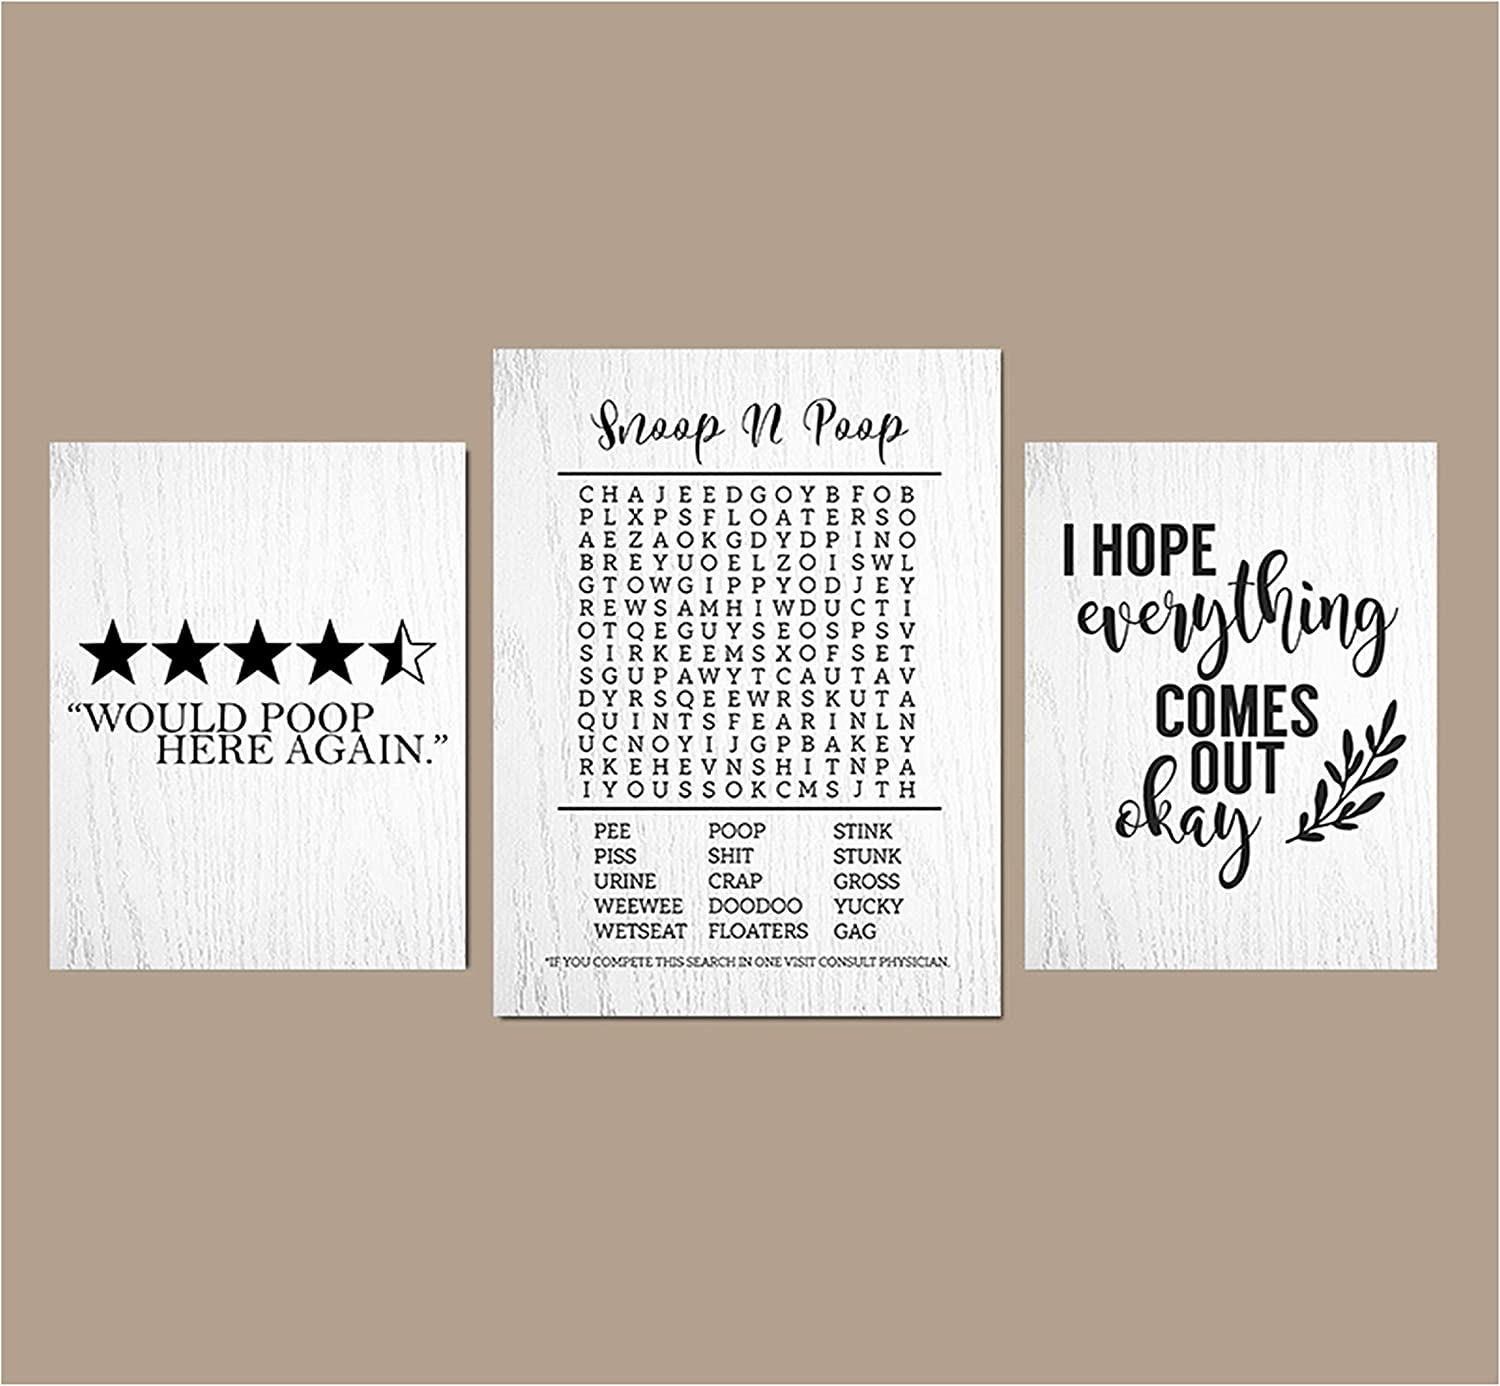 Silly Goose Gifts Bathroom Themed Decor Art Print Wall Art Funny Gift Sets Typography Rustic Unframed Pictures Signs Rules (Star Rating)